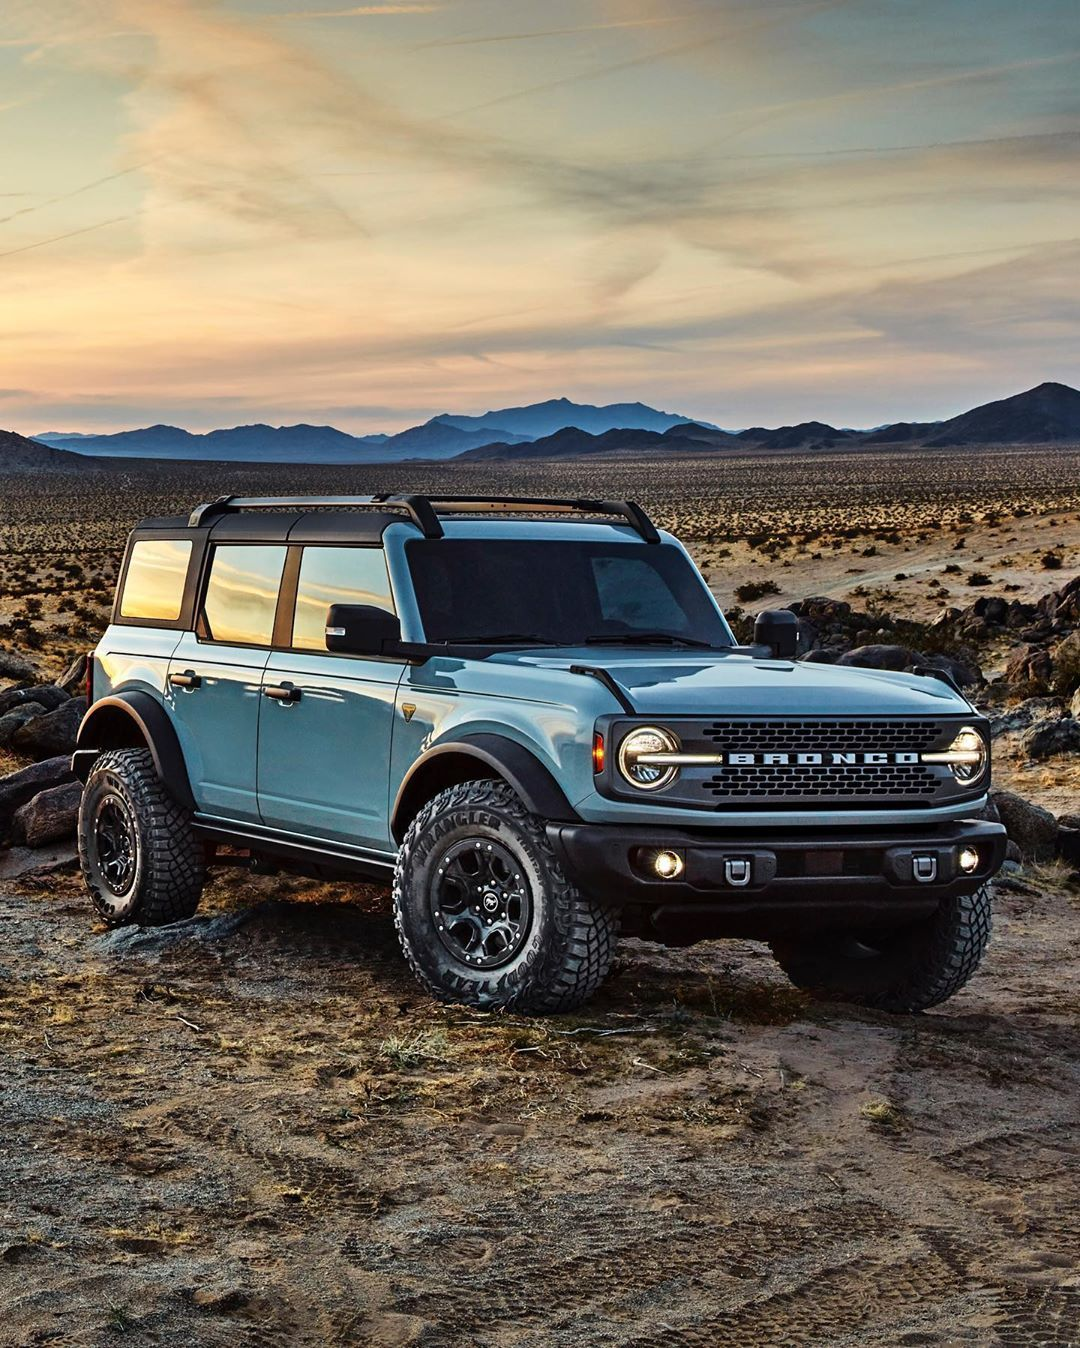 2021 Ford Bronco Sport Price Canada - New Cars Review